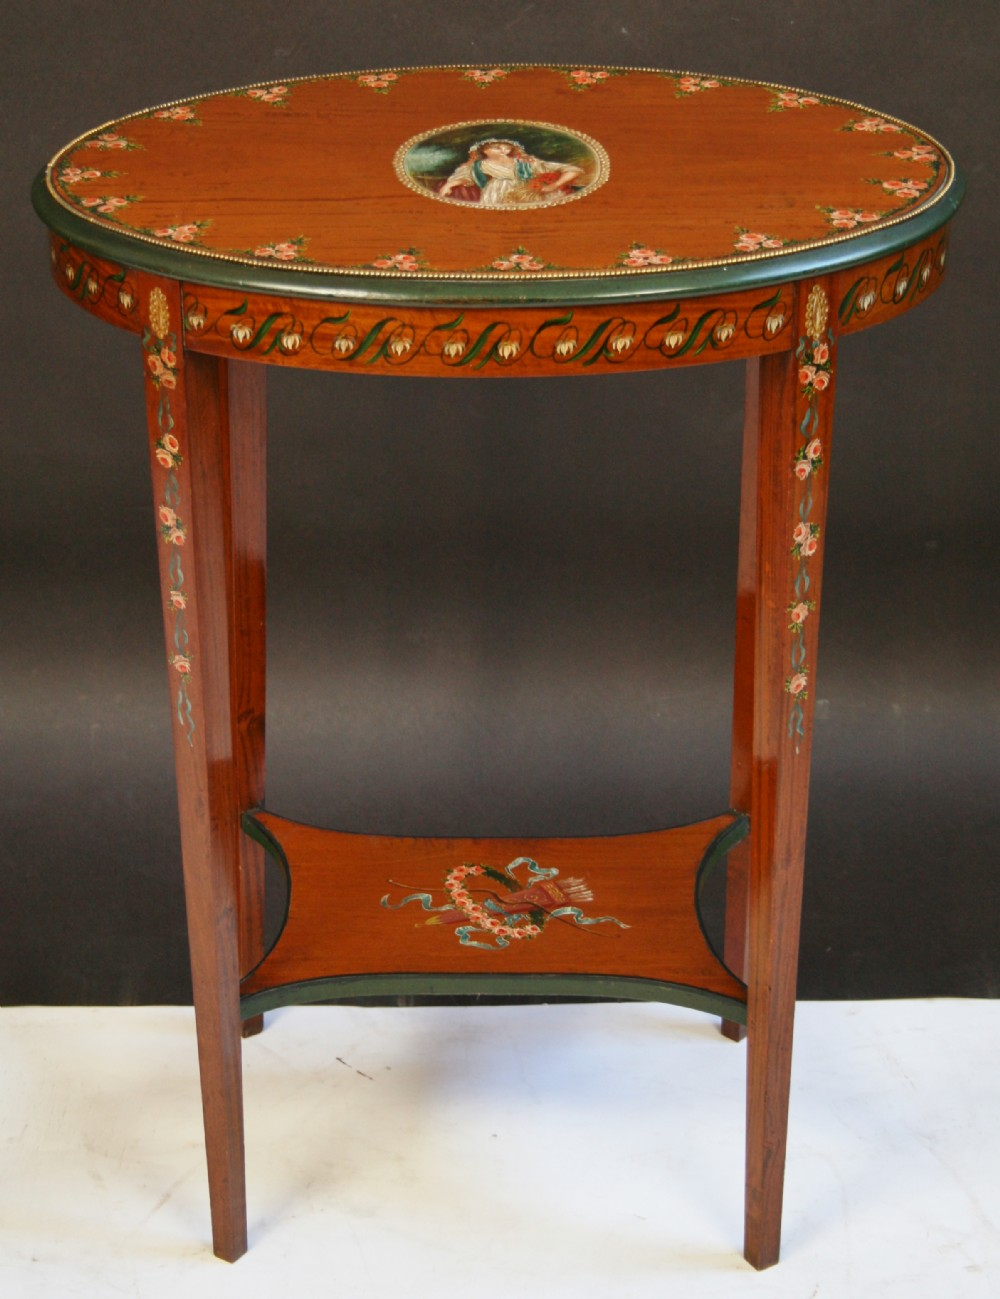 edwardian satinwood oval occasional table with painted decoration